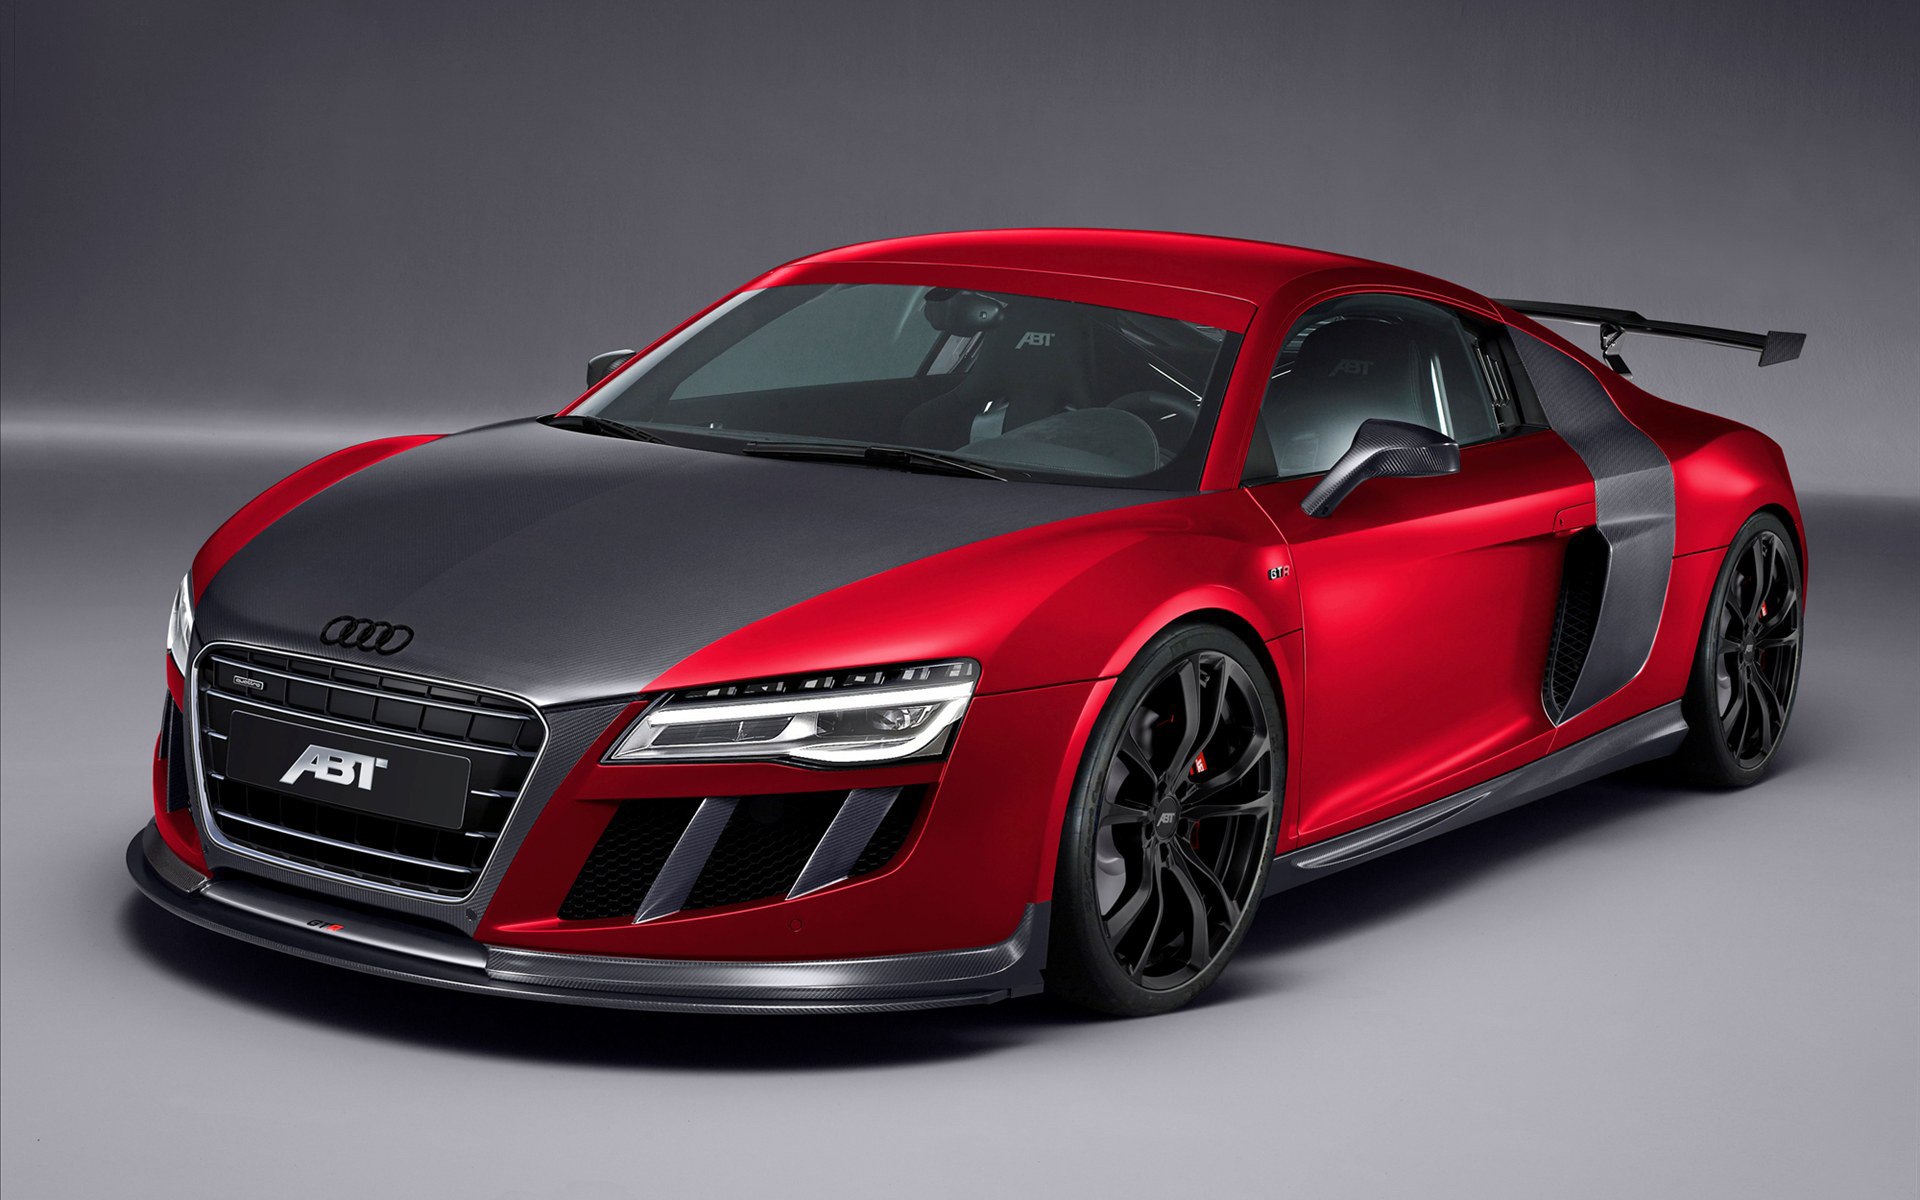 Audi R8 Sport Wallpaper HD 9475 Wallpaper High Resolution Wallarthd 1920x1200